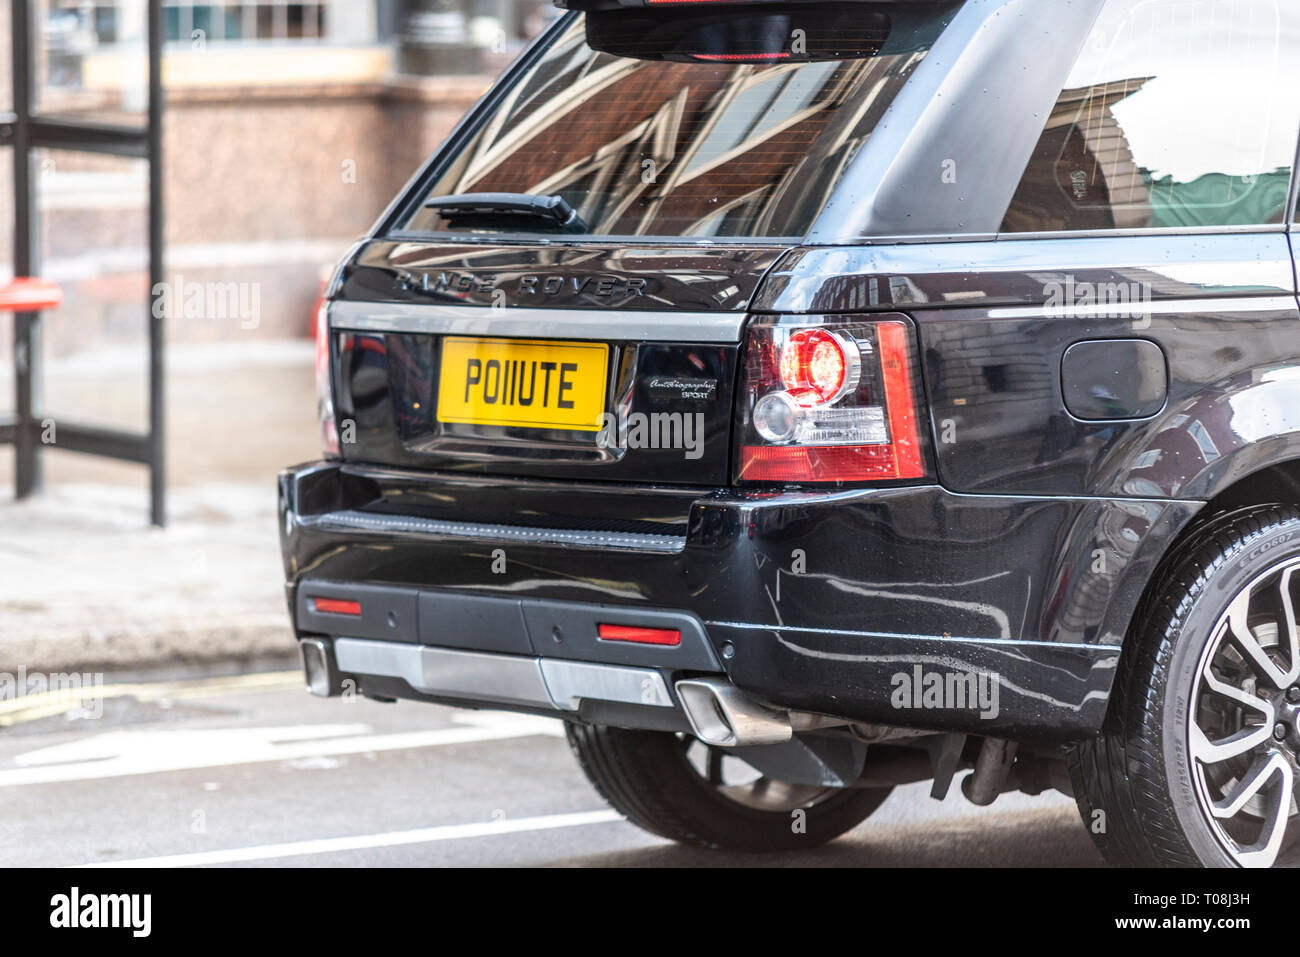 Pollute, a Range Rover car with registration number PO11UTE spaced to look like the word pollute. London traffic pollution - Stock Image